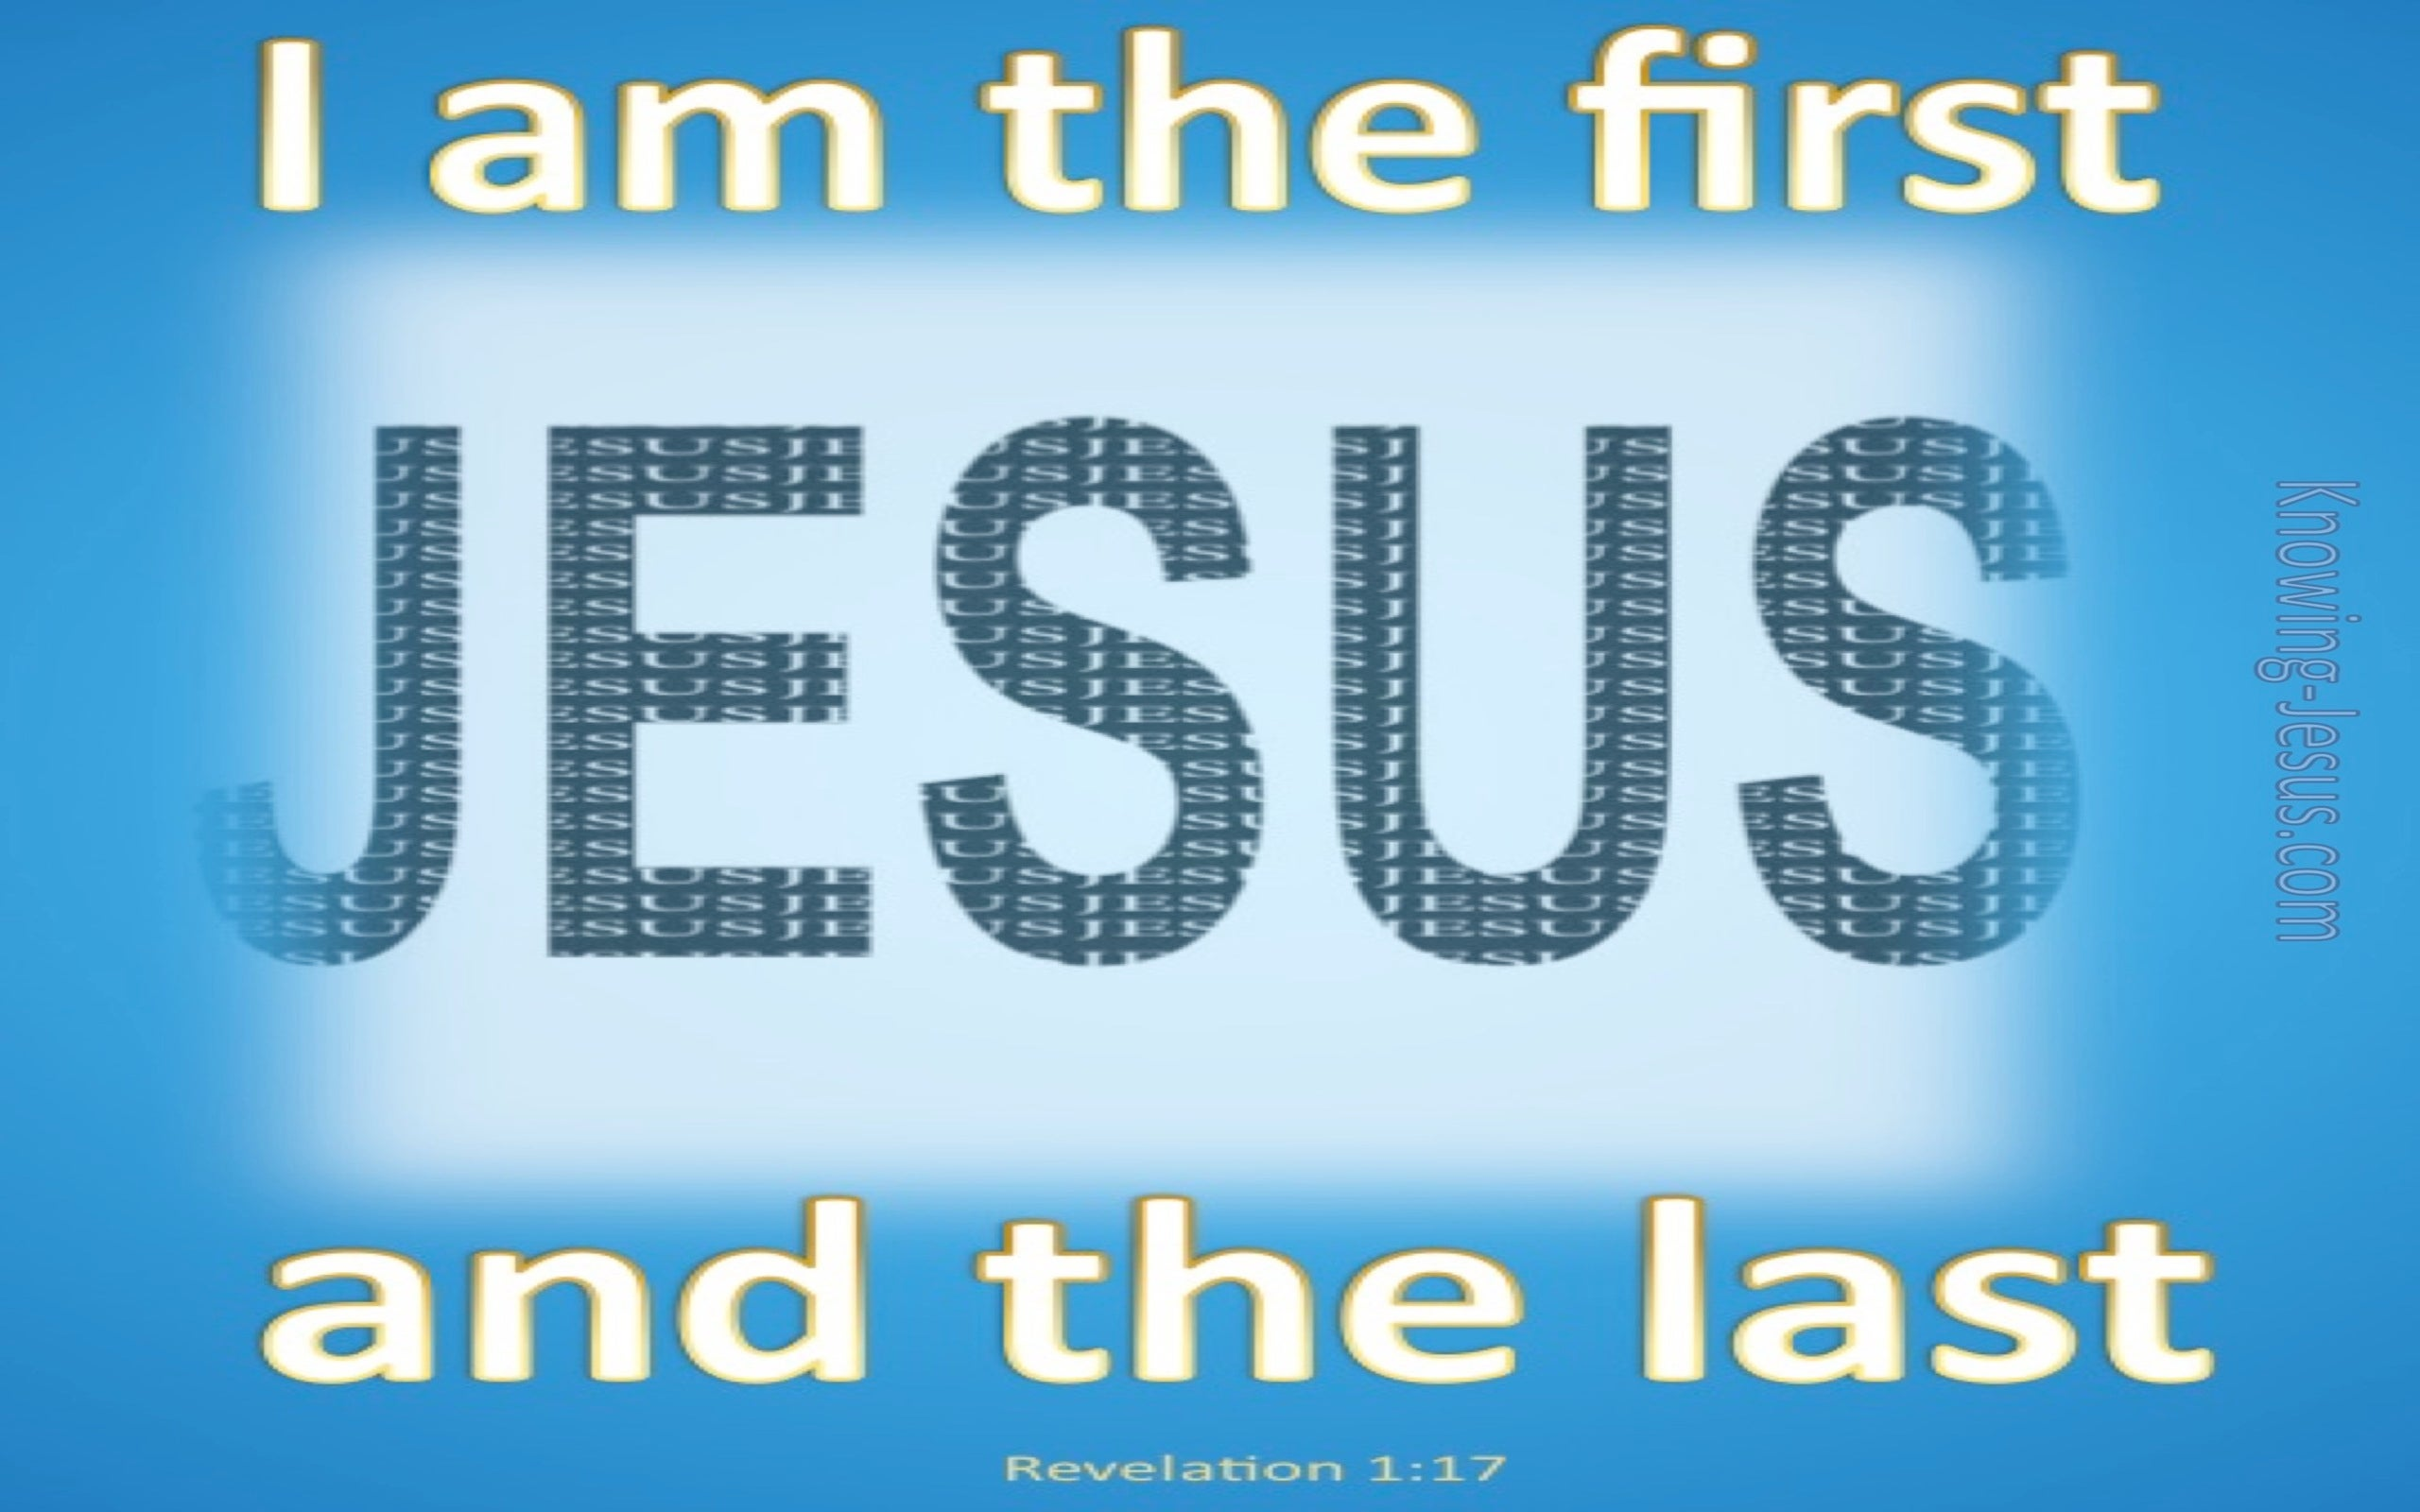 Revelation 1:17 The First and Last (blue)